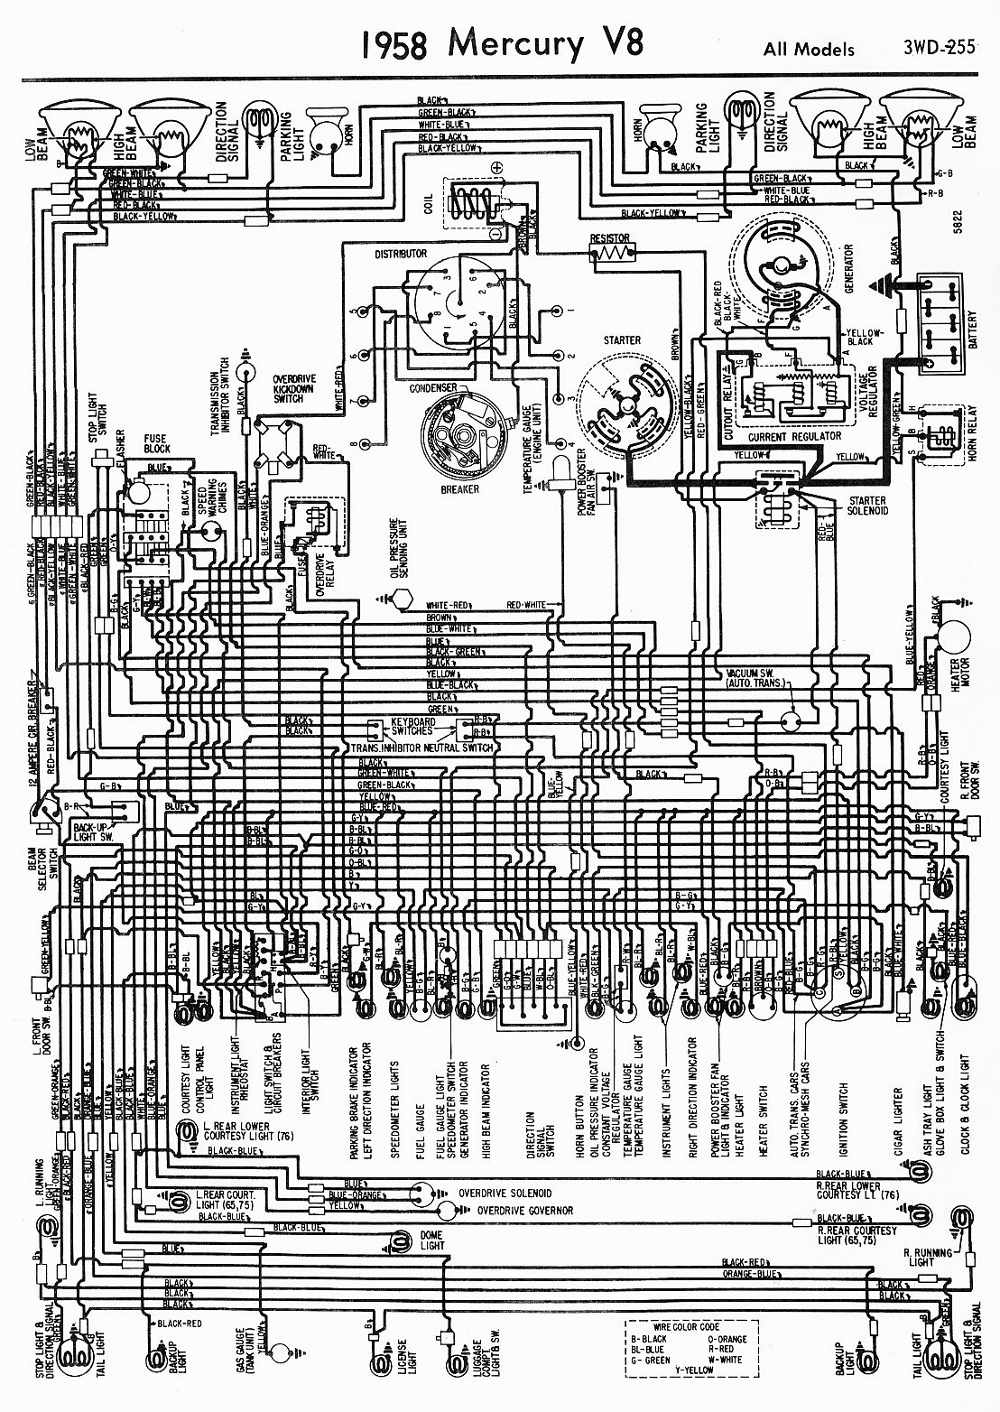 Wiring Diagrams 911  1958 Mercury V8 All Models Wiring Diagram